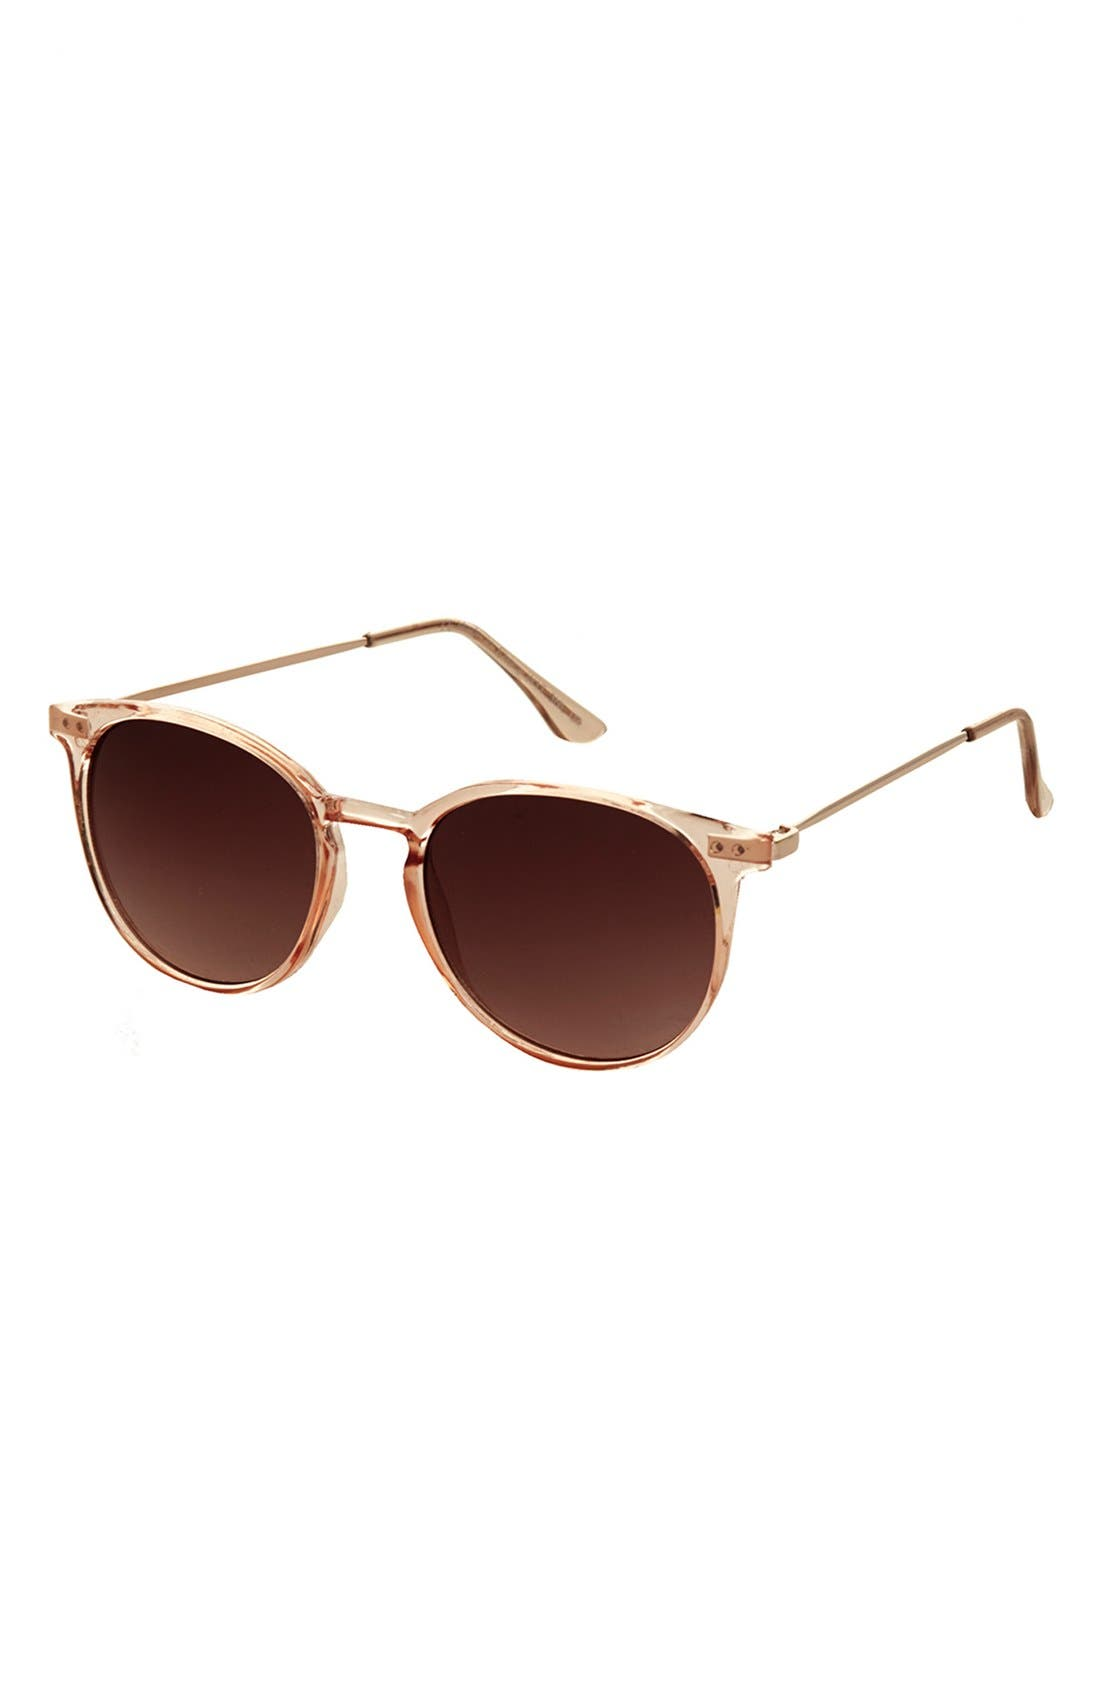 Alternate Image 1 Selected - Topshop 51mm Slim Sunglasses